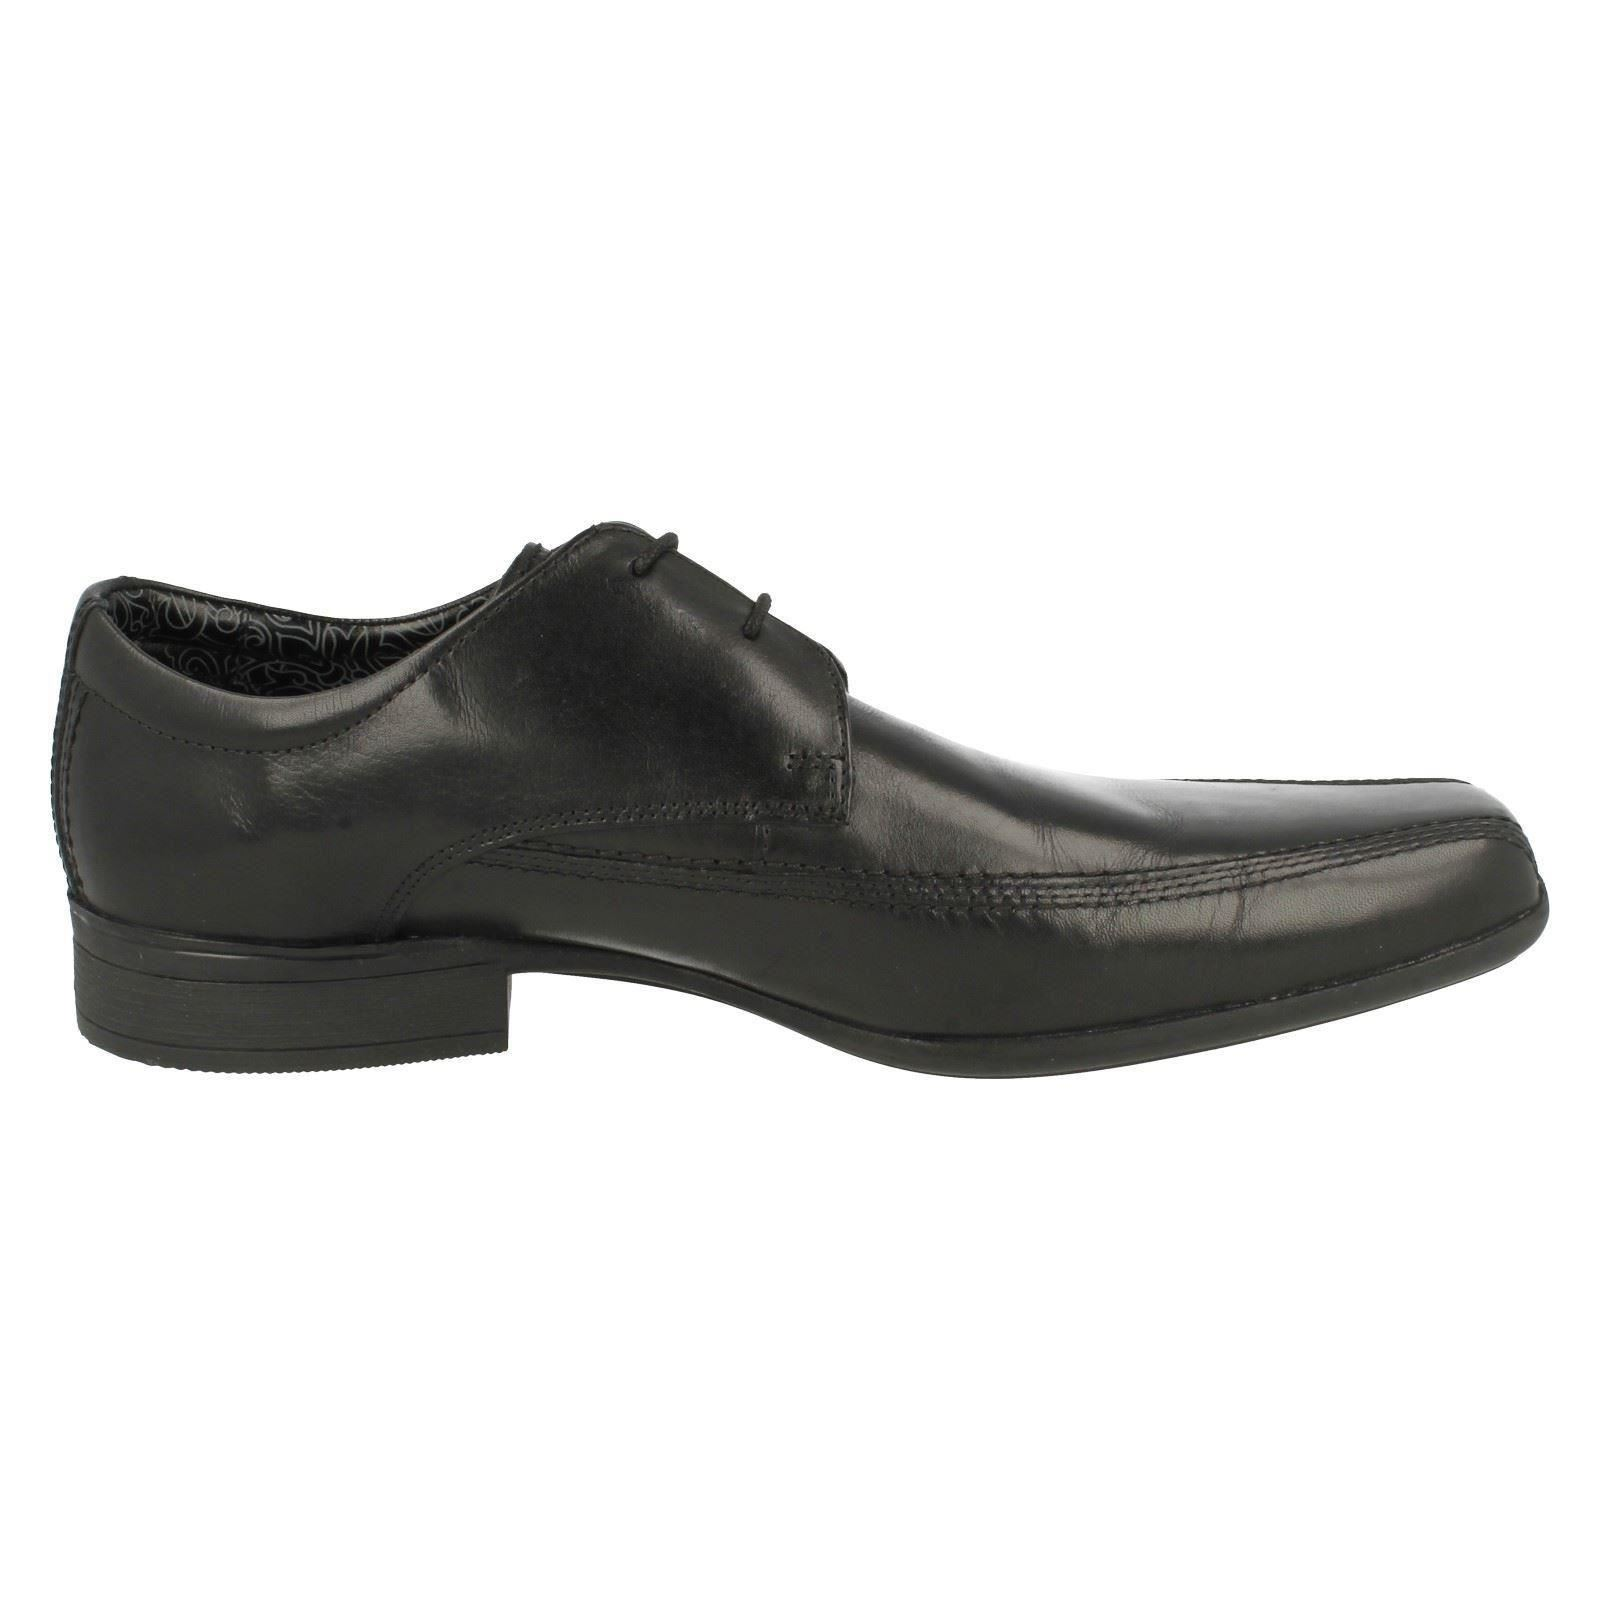 Herren Clarks Schuhes Aze Day Formal Schuhes Clarks 0be7da